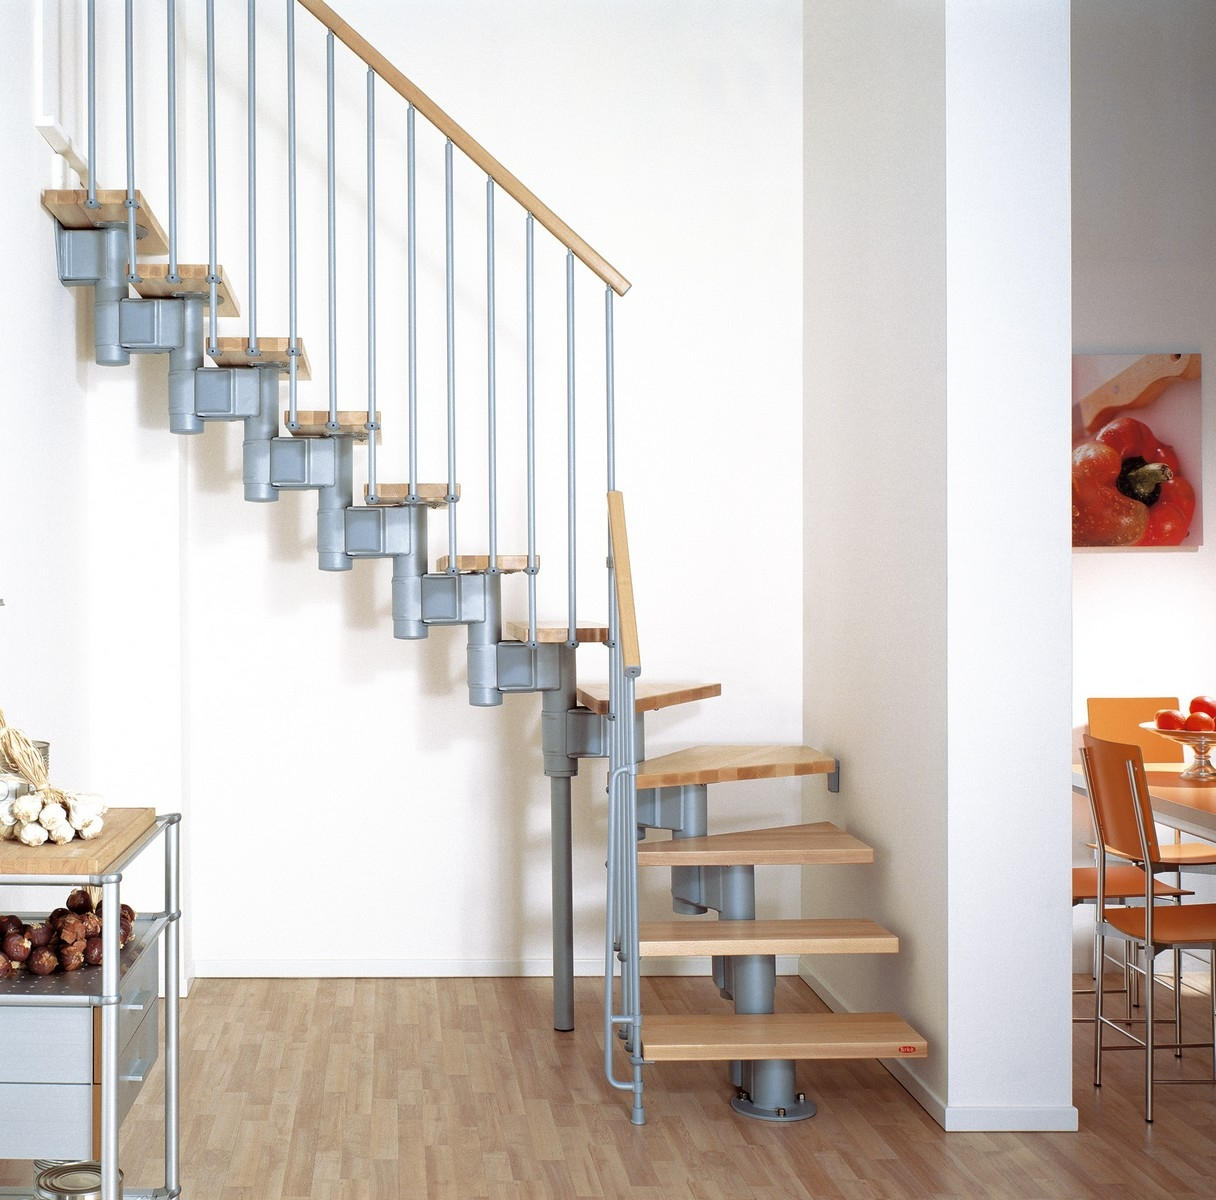 Kompact Adjustable Staircase Kit Metal Steel And Wood Spiral | Spiral Staircase 2 Floors | 8 Ft | Interesting | Spiral Shaped | Outdoor | Wooden